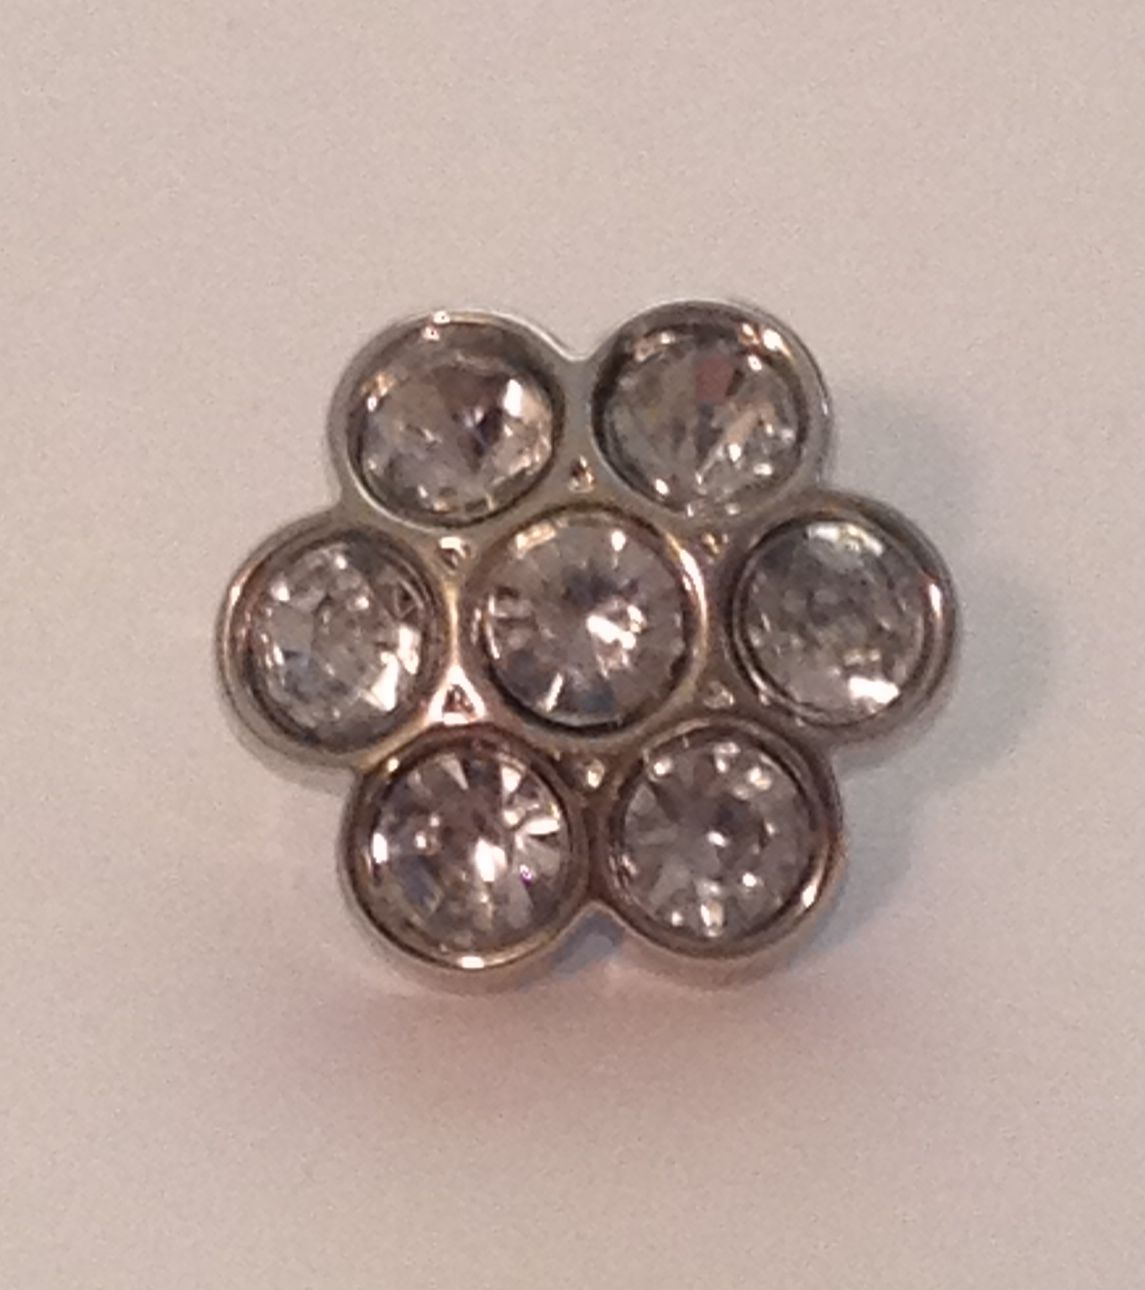 Mini Flower Blingy Button - Clear - 1 piece